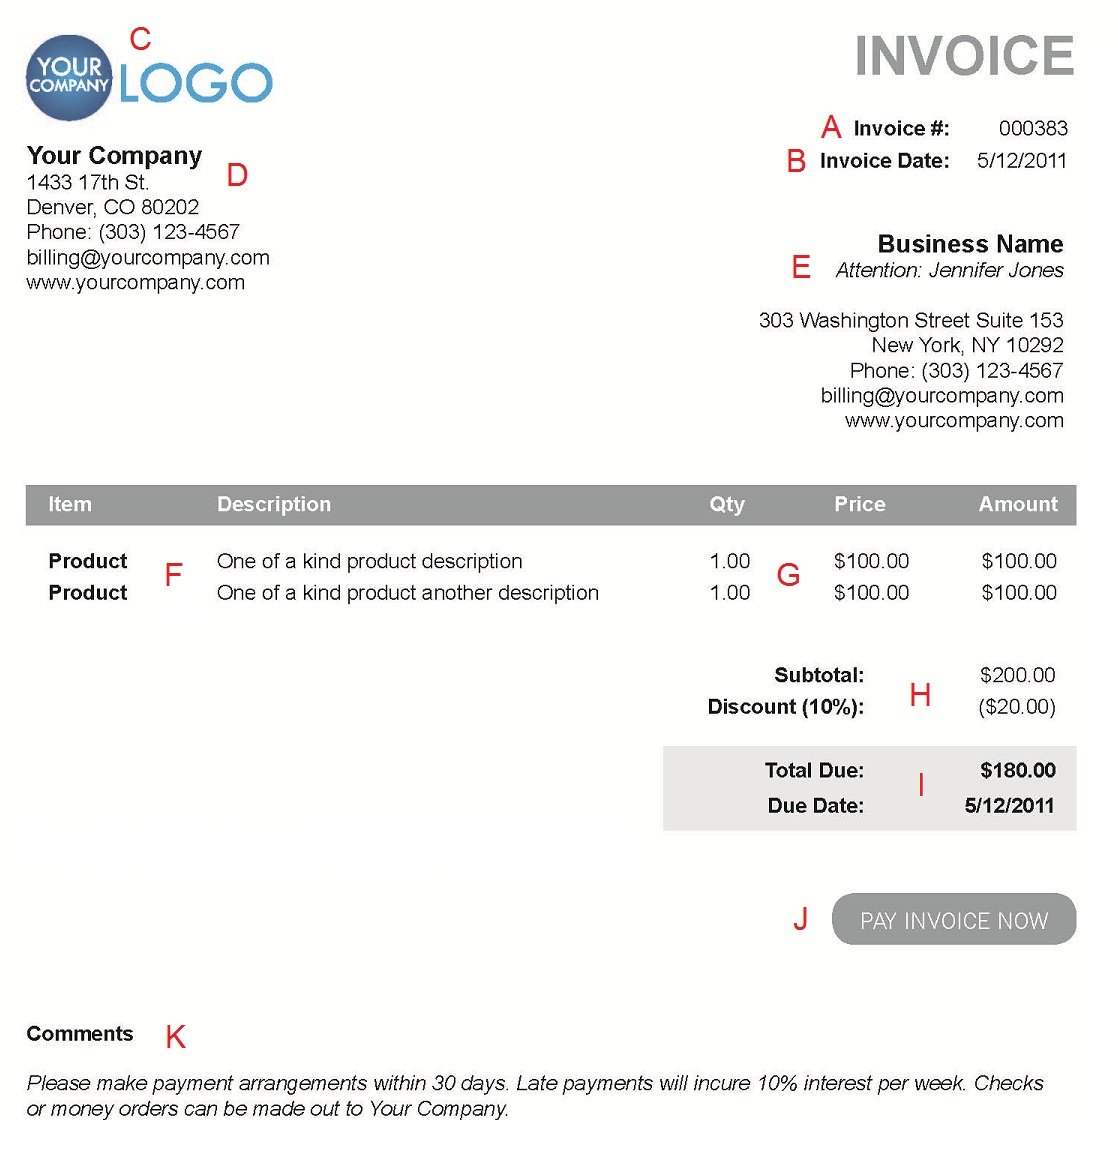 Ultrablogus  Splendid The  Different Sections Of An Electronic Payment Invoice With Fair A  With Appealing Raising Invoices Also Blank Invoice Template Uk In Addition Sample Proforma Invoice Format And Valid Tax Invoice As Well As Best Invoicing App For Iphone Additionally Invoice And Quote Software Small Business From Paysimplecom With Ultrablogus  Fair The  Different Sections Of An Electronic Payment Invoice With Appealing A  And Splendid Raising Invoices Also Blank Invoice Template Uk In Addition Sample Proforma Invoice Format From Paysimplecom